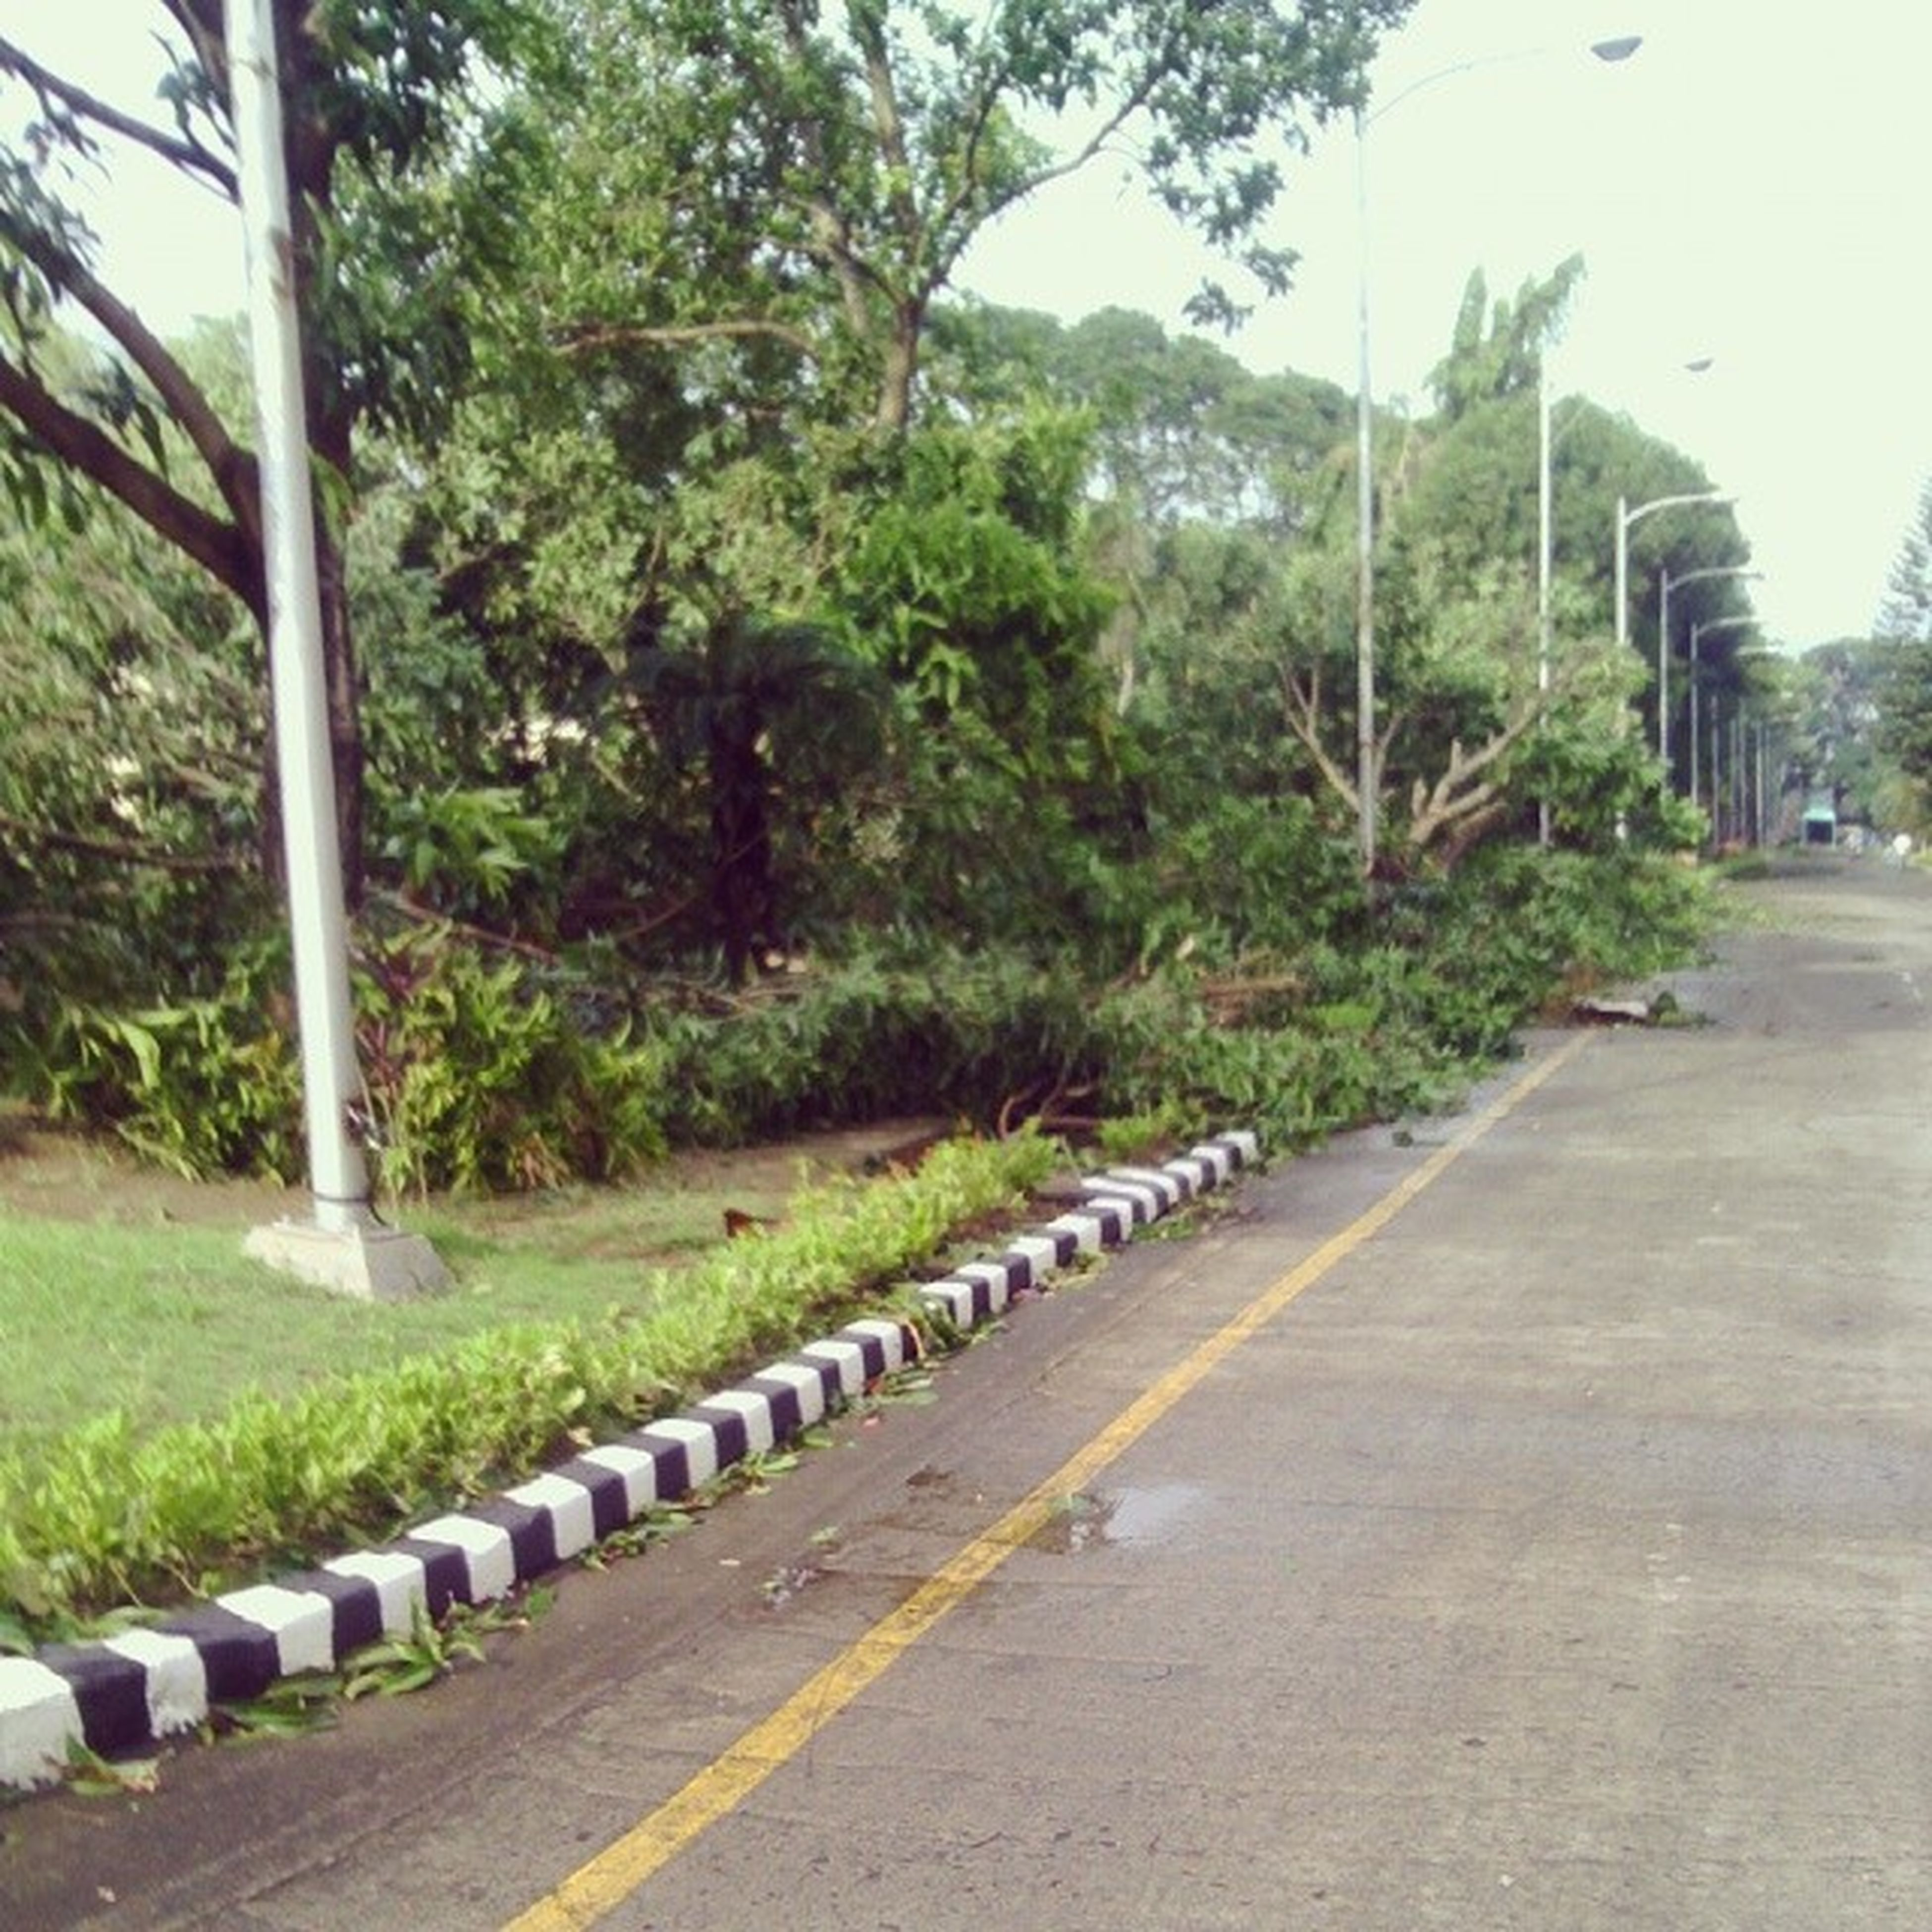 tree, road, the way forward, transportation, street, in a row, green color, diminishing perspective, growth, road marking, treelined, empty road, footpath, day, outdoors, vanishing point, empty, street light, nature, plant